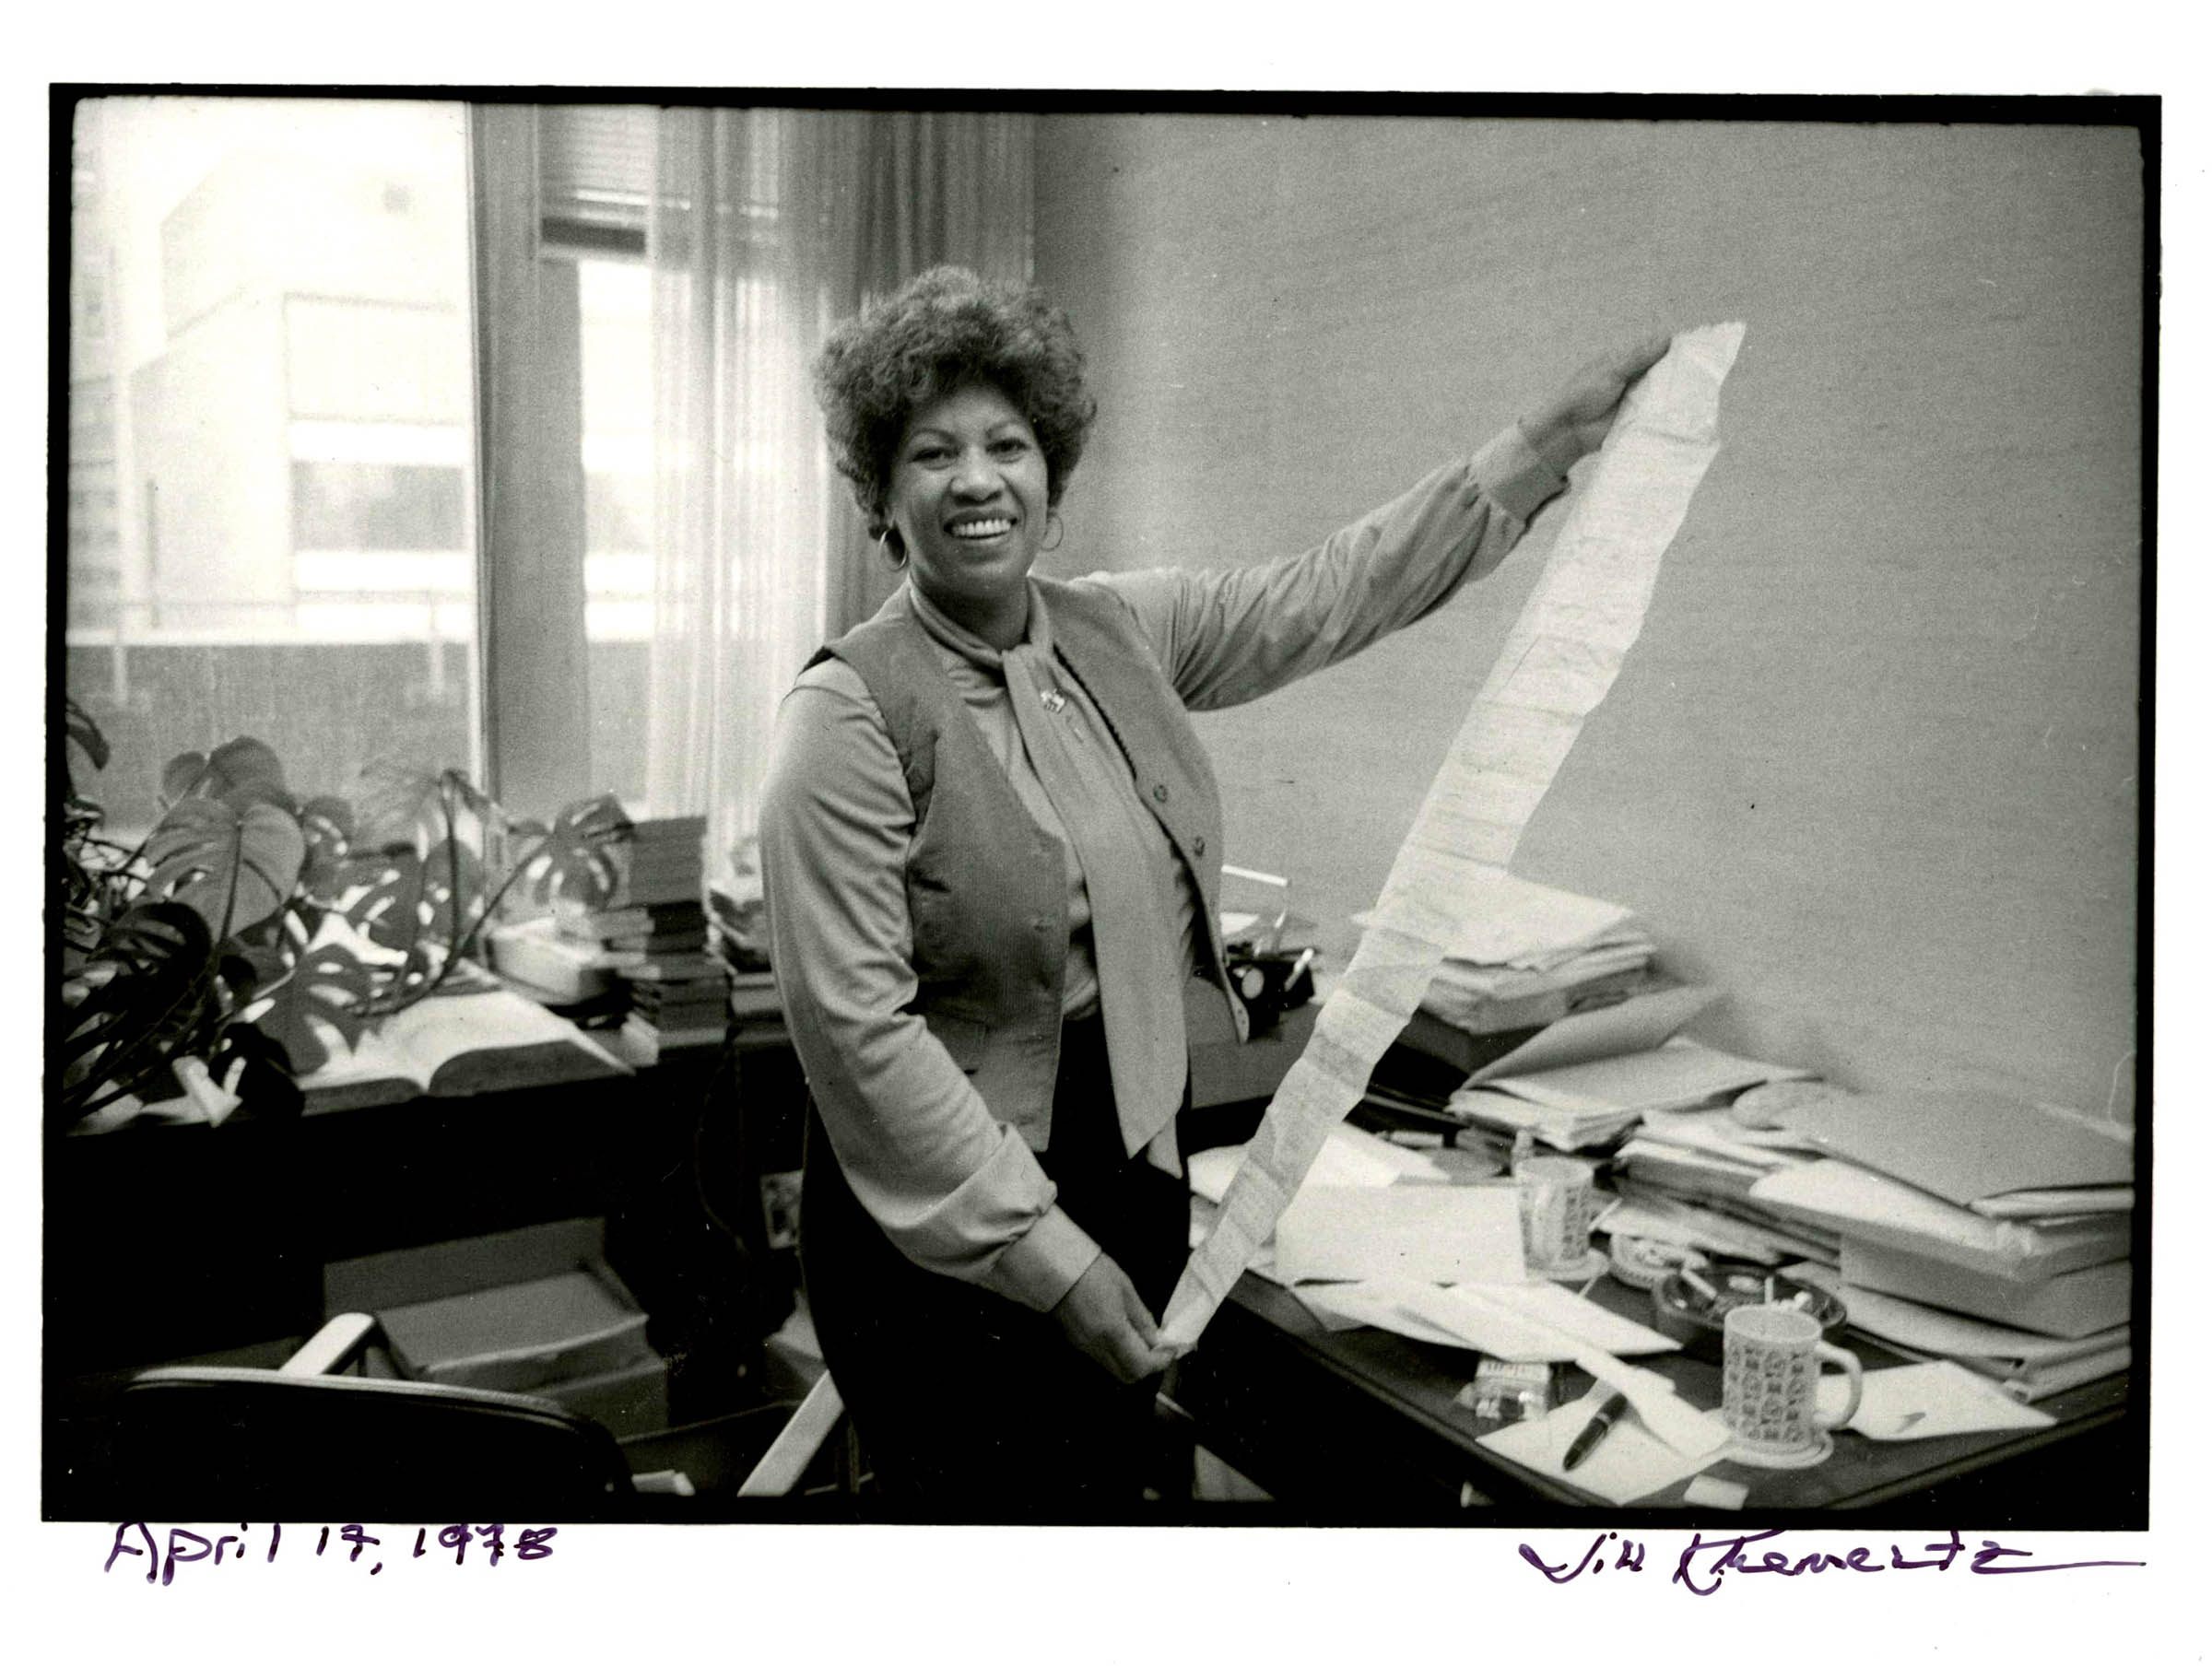 Morrison, in her office at Random House where she worked as an editor, on April 14, 1978.